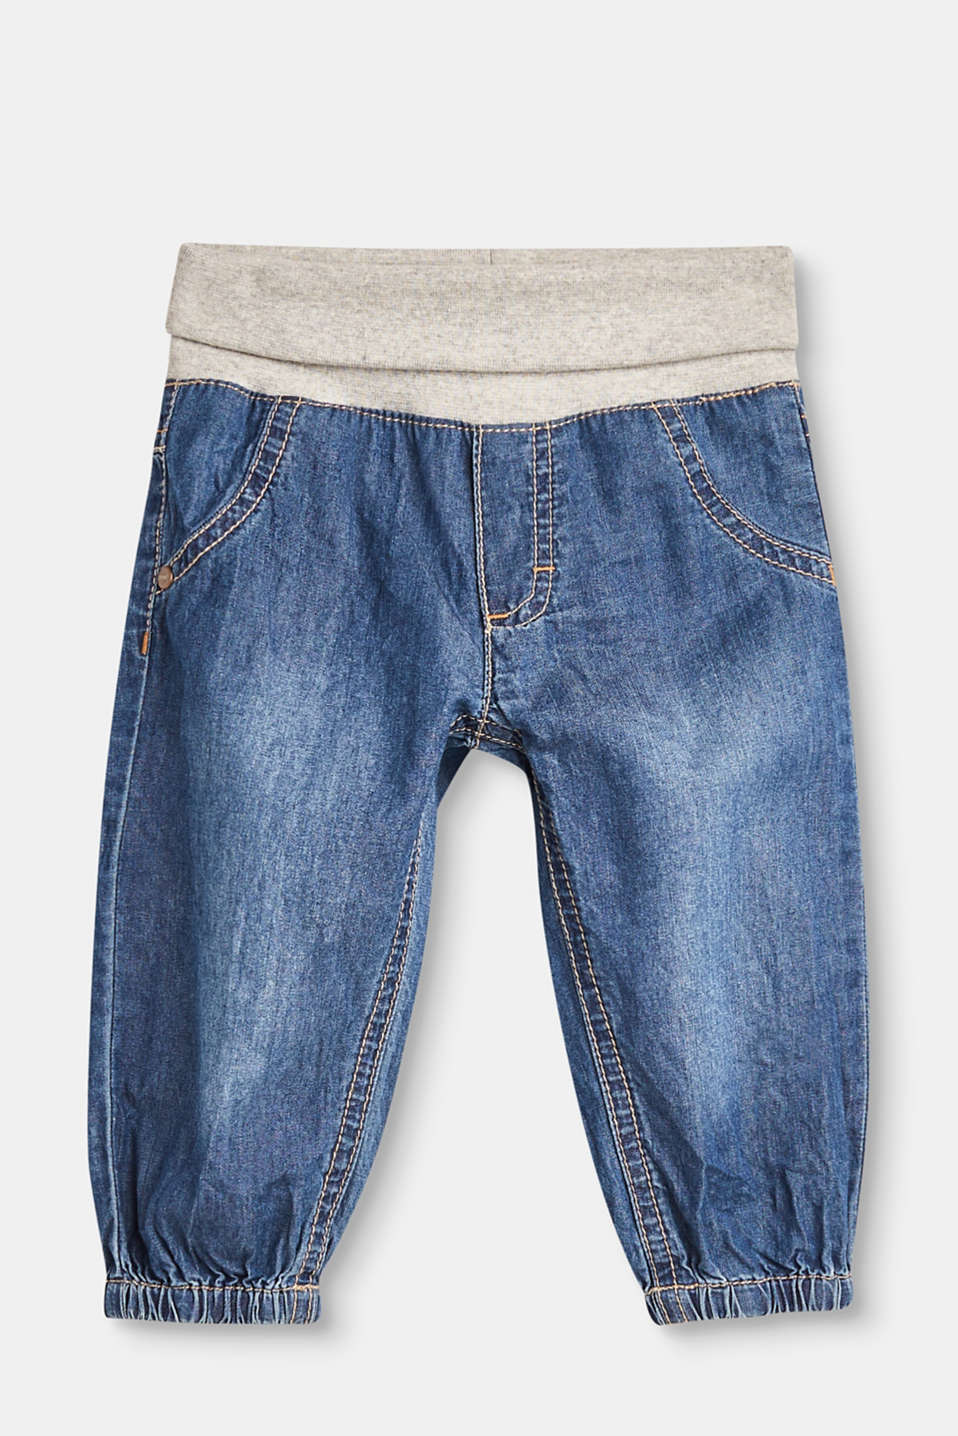 The soft cotton denim and elasticated, ribbed waistband make these jeans a real feel-good piece!